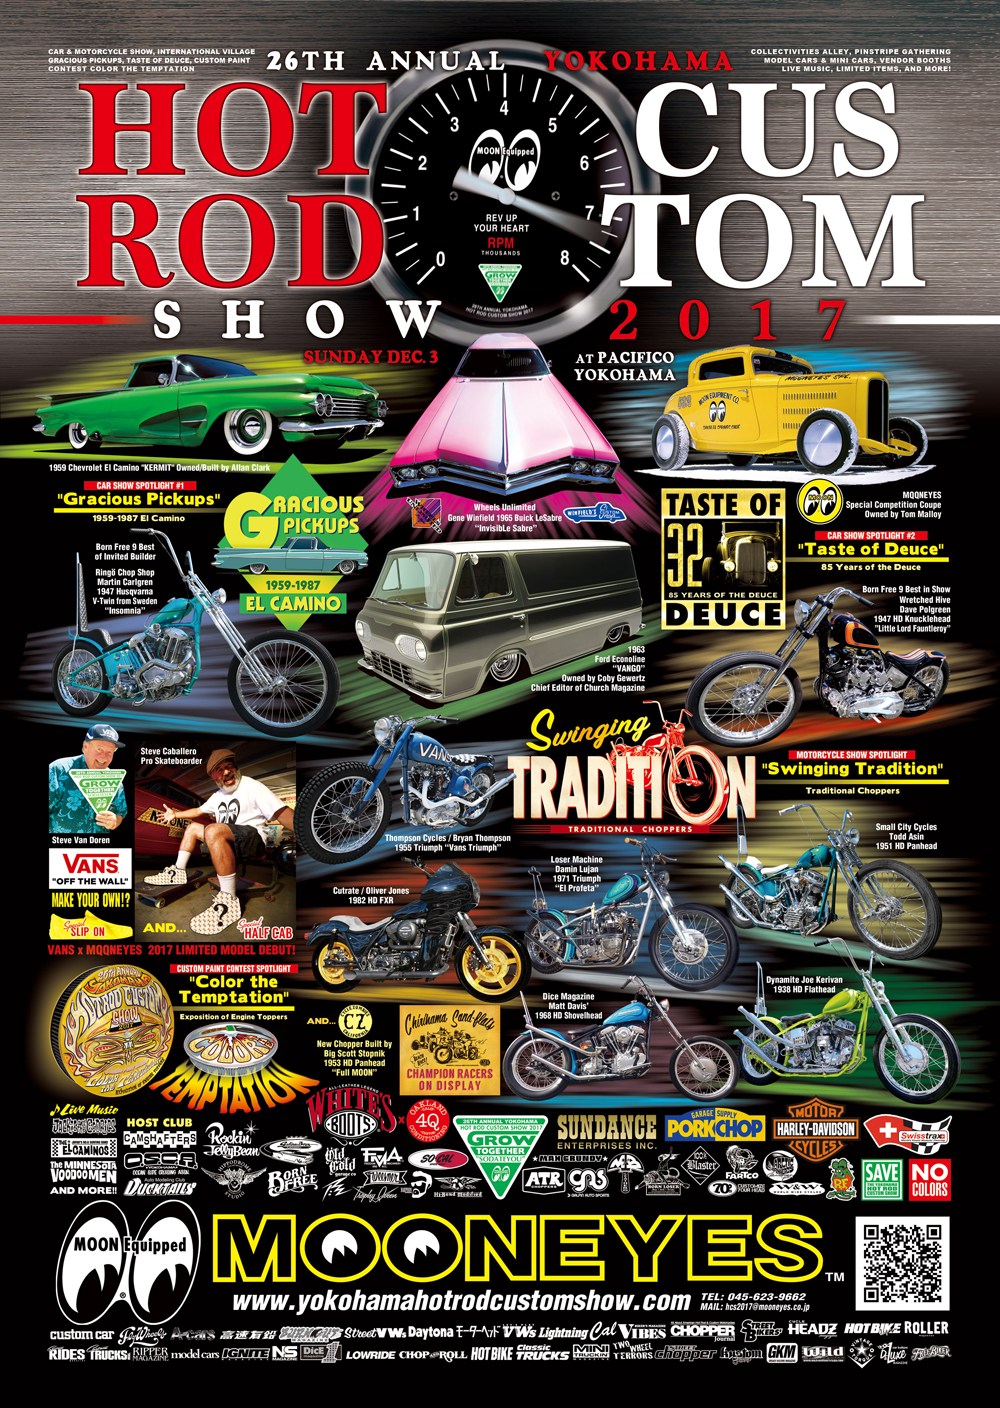 Yokohama Hot Rod Custom Show 2017